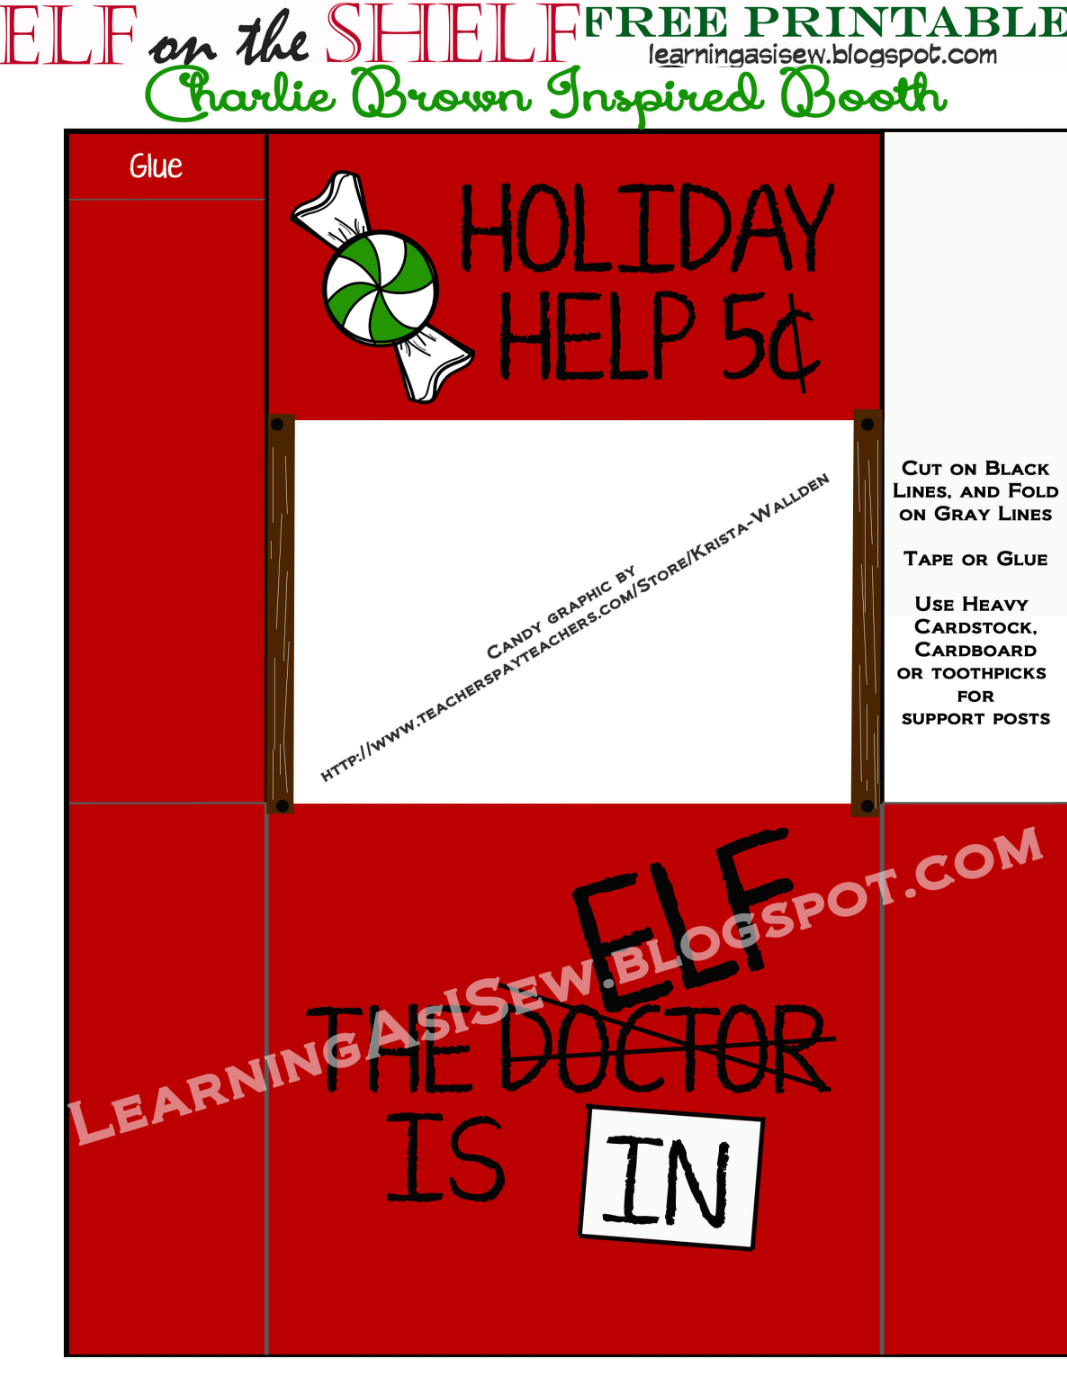 Elf On The Shelf Holiday Help Booth Inspired By Charlie